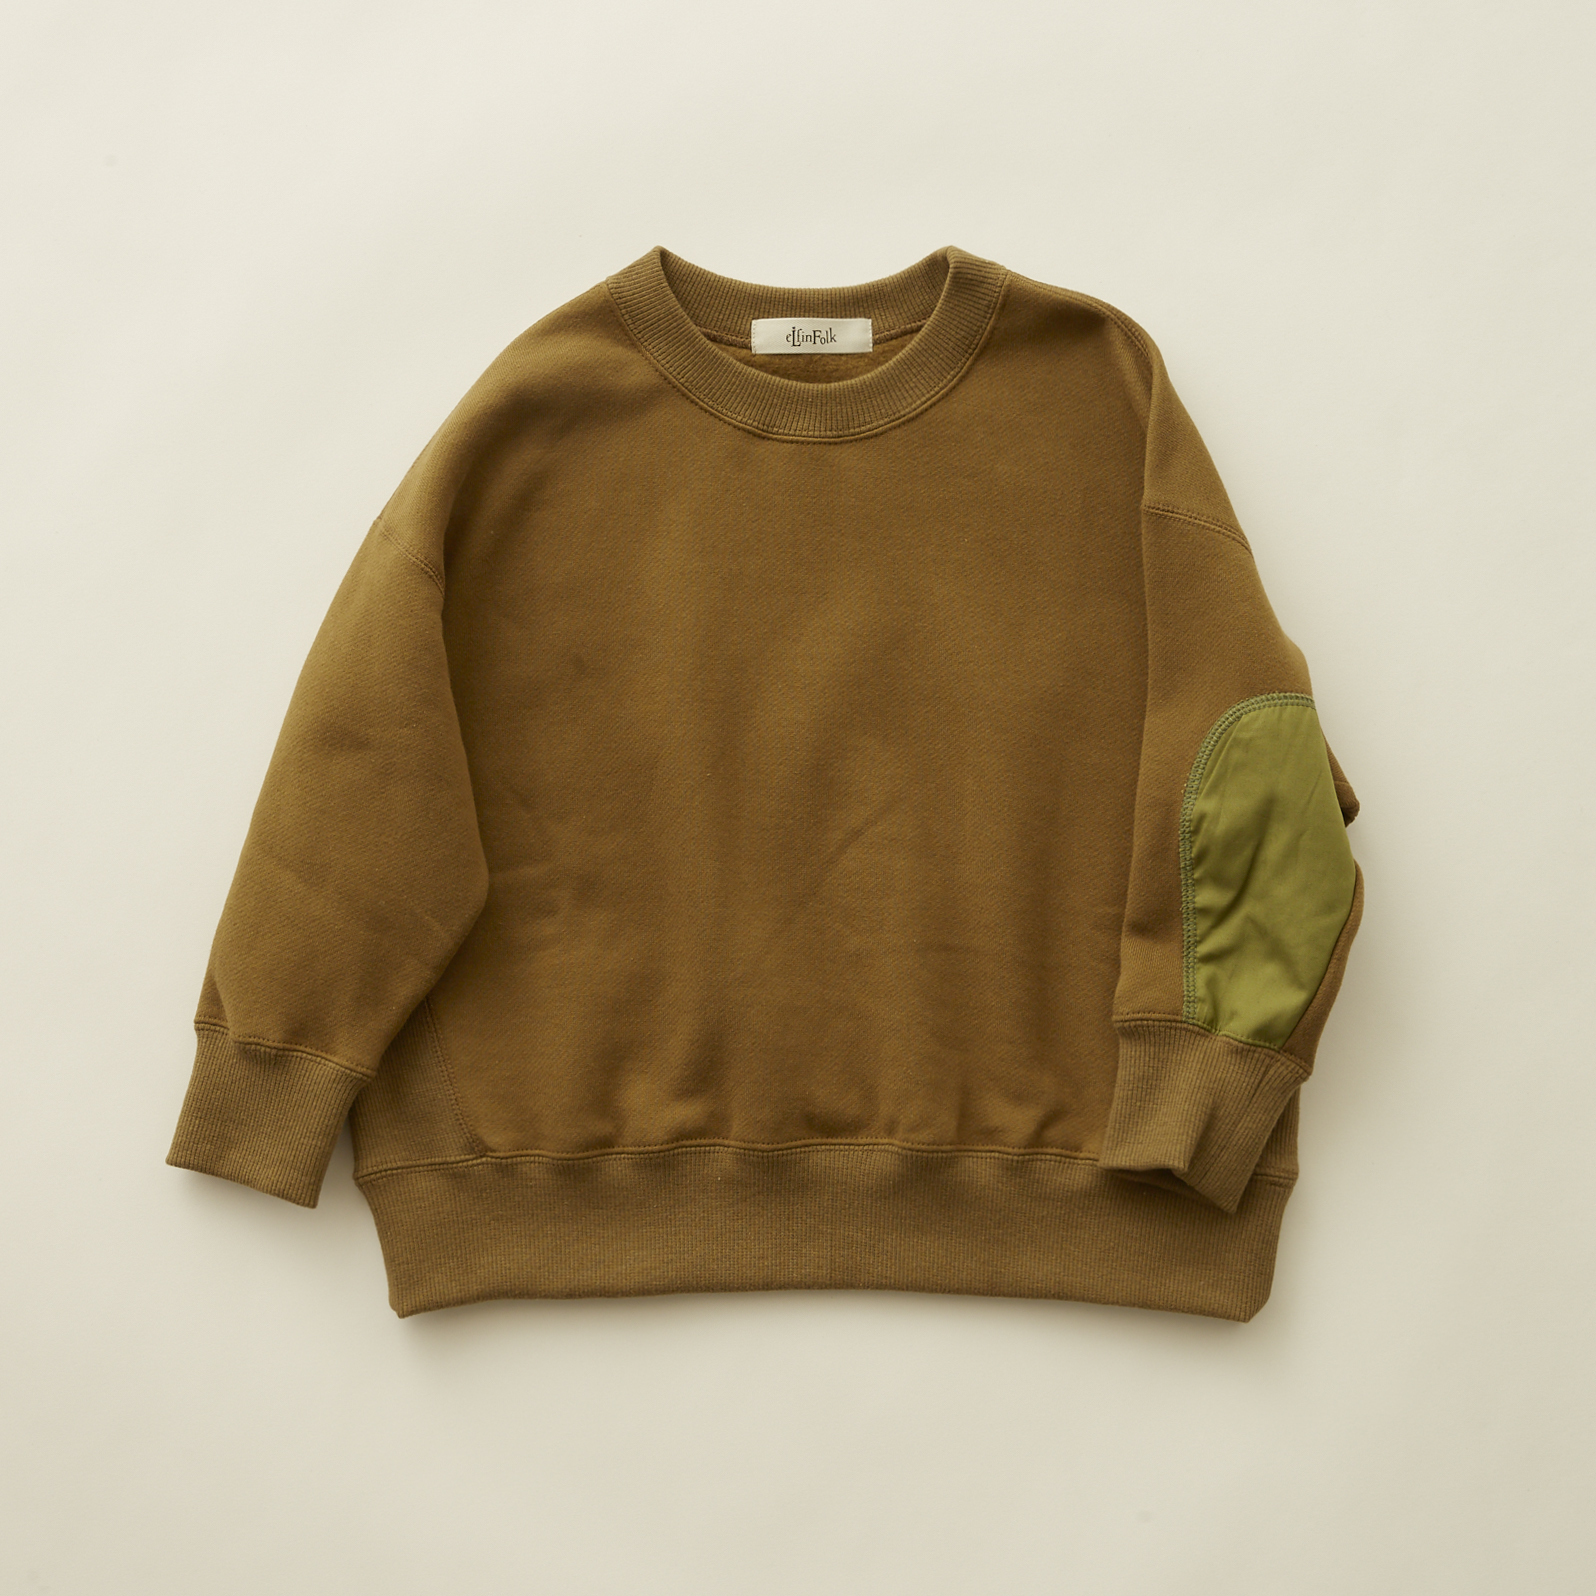 《eLfinFolk 2020AW》big sweat shirts / olive / 110-130cm